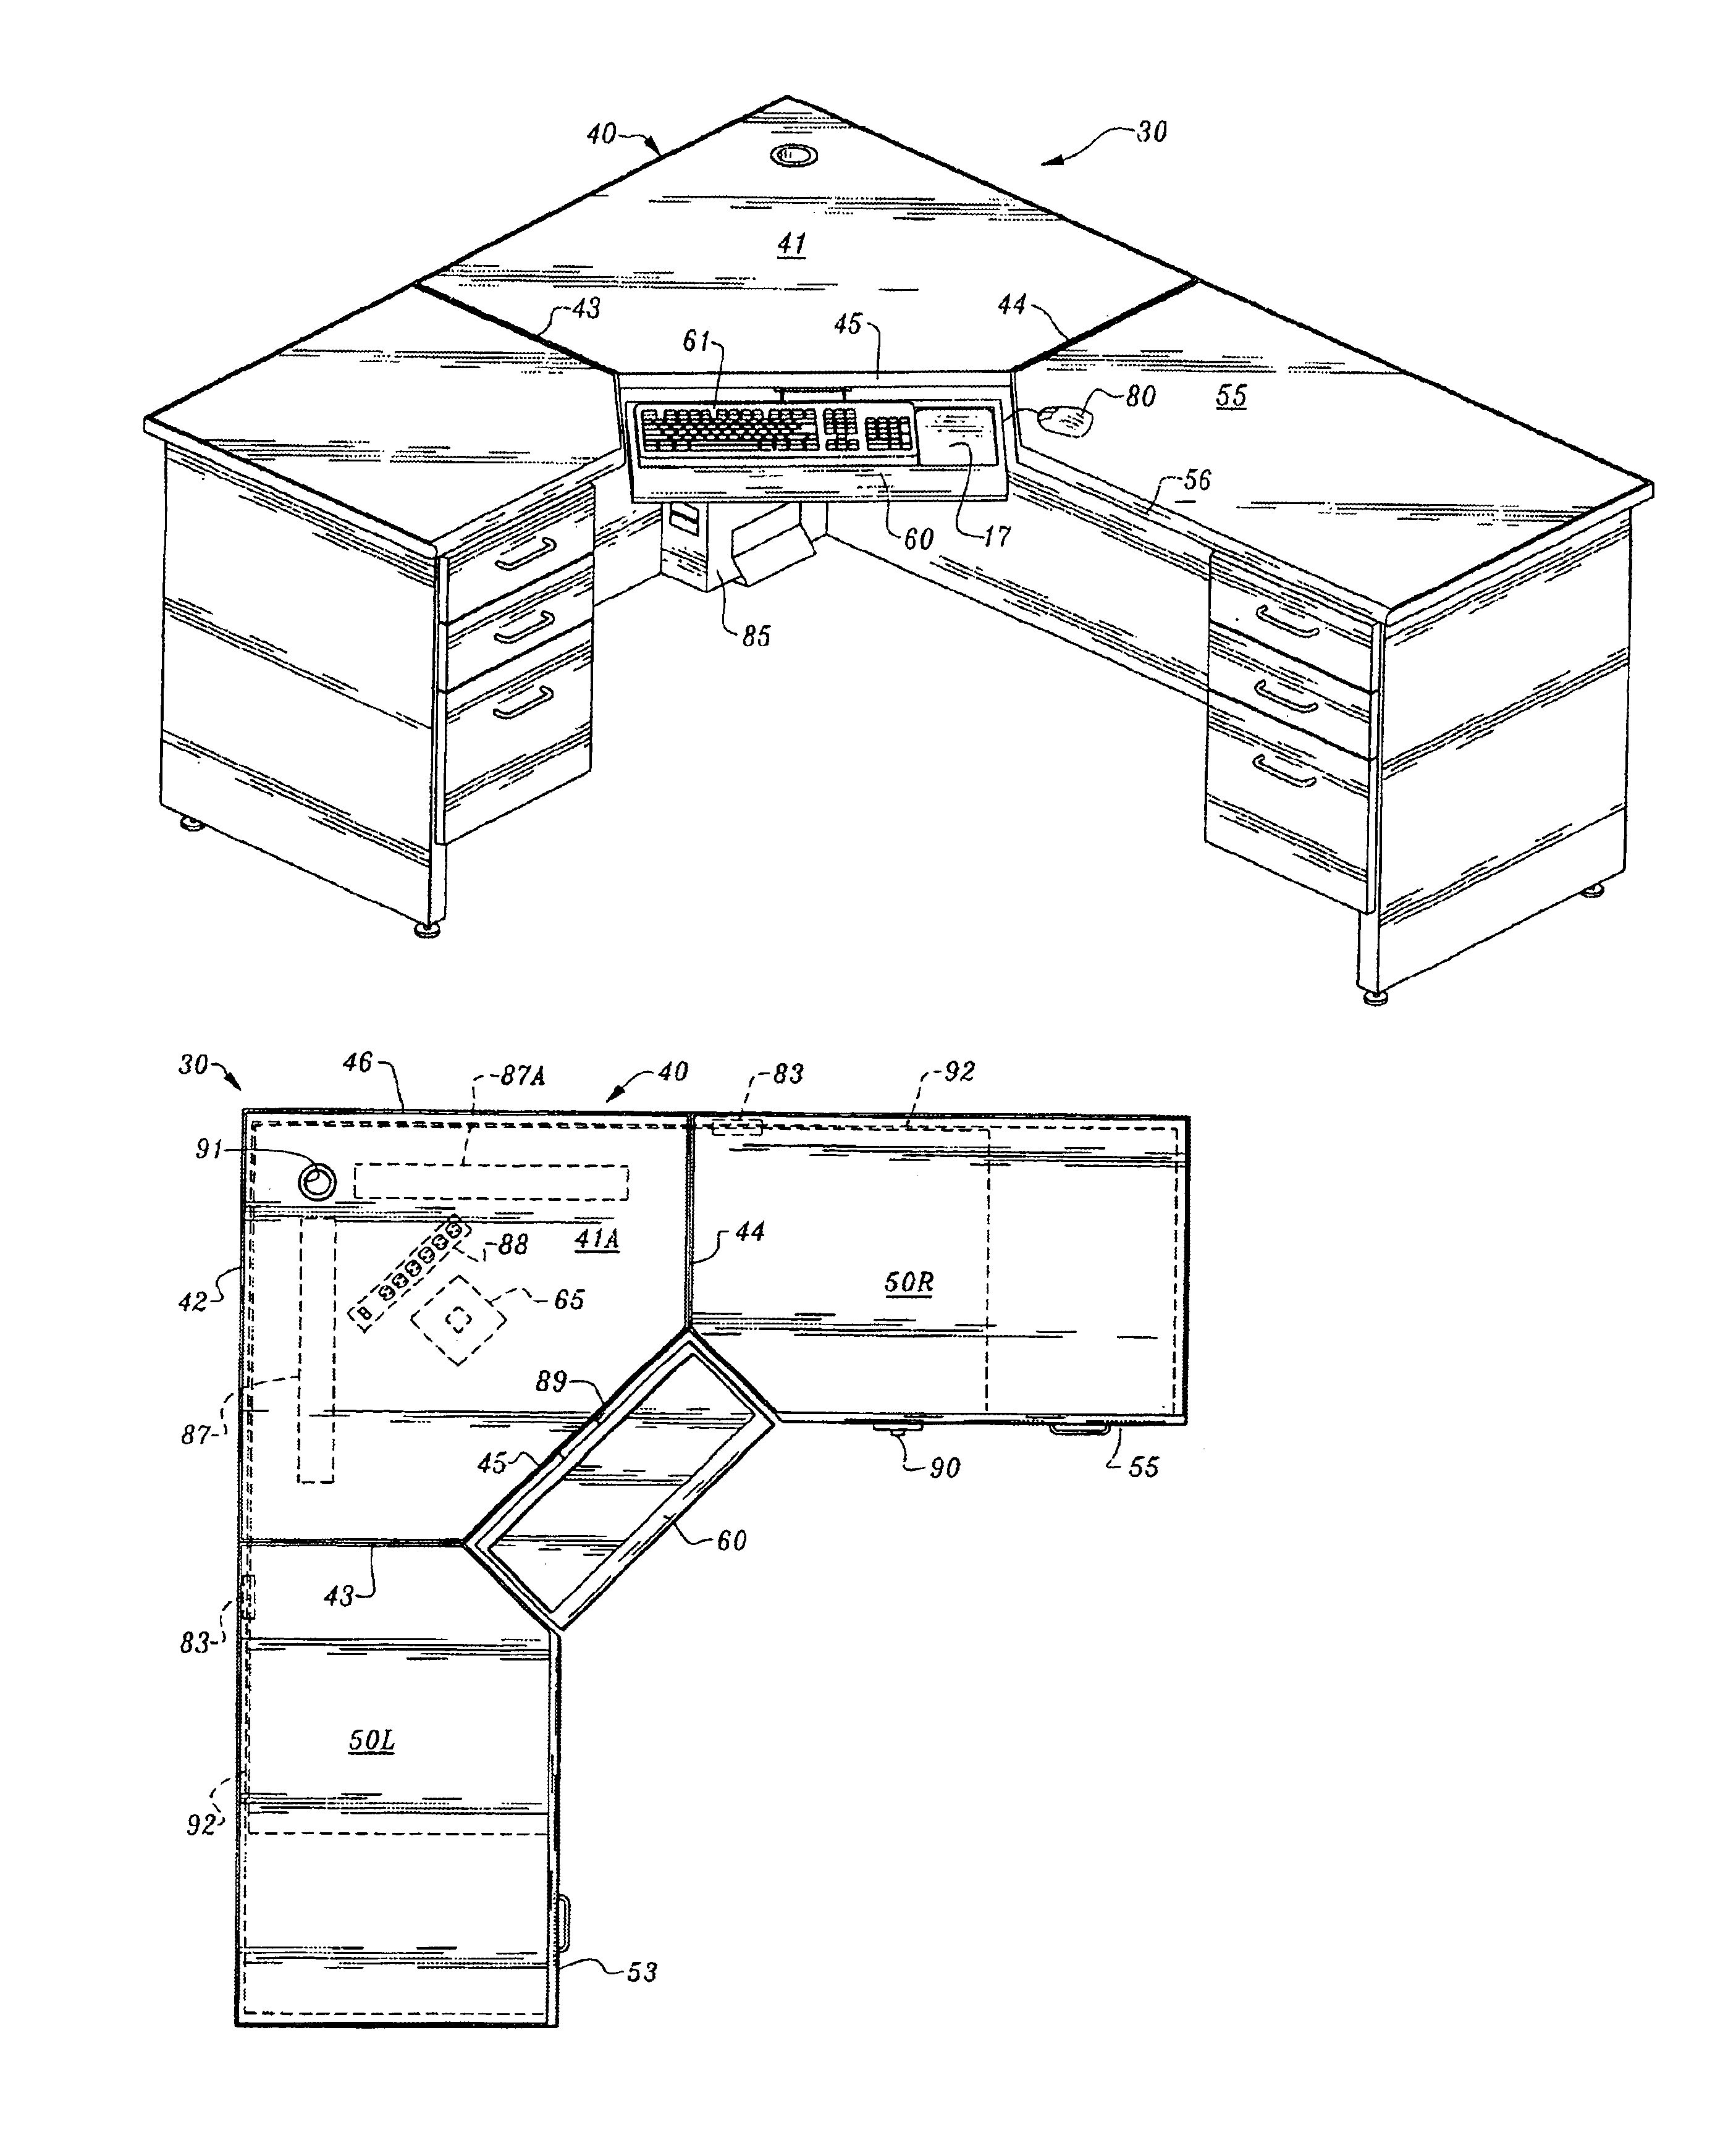 Are You Struggling In Finding Ideas To Build Your Own Diy Computer Desk Well If You Find This Article You R Computer Desk Plans Diy Computer Desk Desk Plans